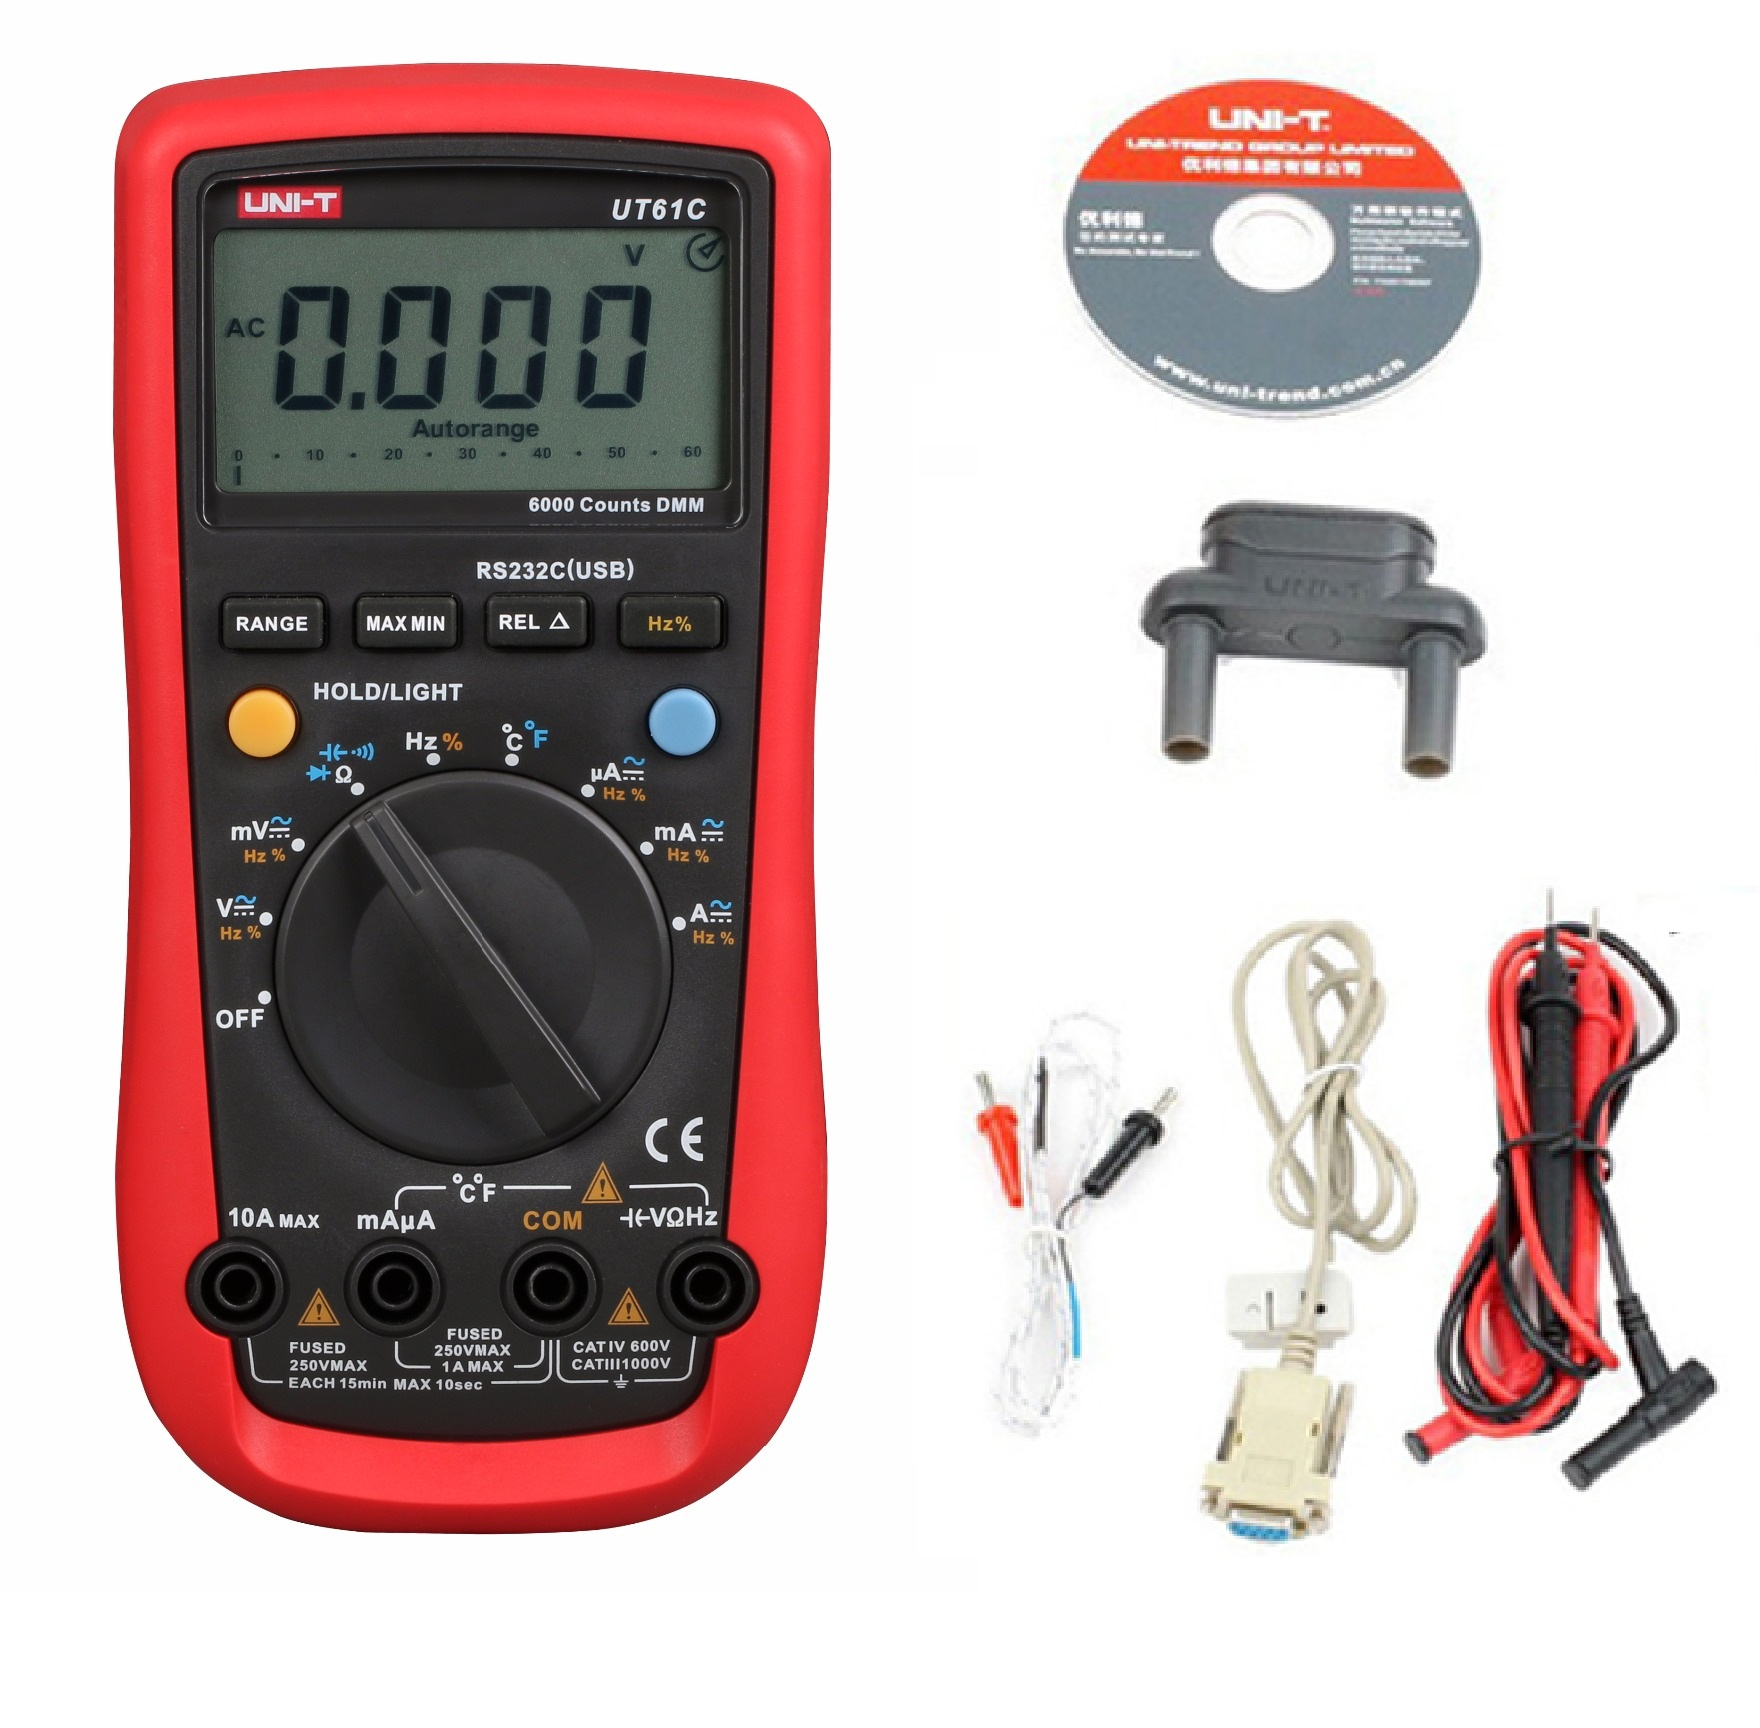 2017 New UNI-T UT-61C Modern Digital Multimeters UT61C AC/DC voltage current auto/manual range Meter backlight & RS232 торшер arte lamp duetto a4399pn 2ss